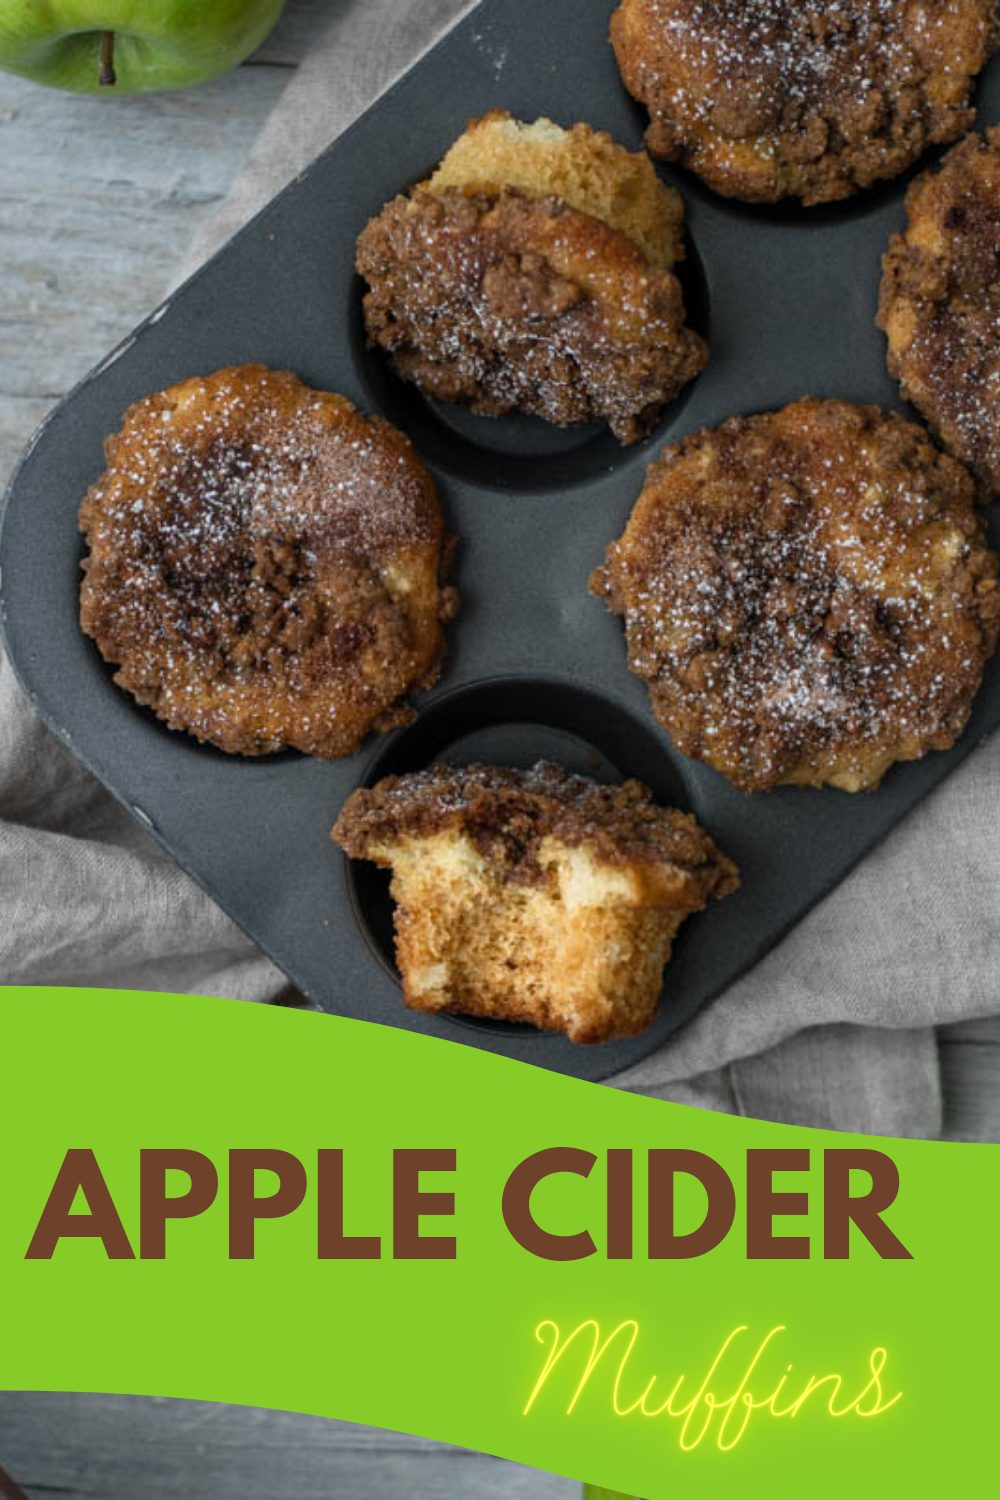 These New England inspired apple cider muffins make a great fall recipe that is quick to bake, full of flavor and delicious to eat. Head to our site for full recipe! #fallrecipes #applerecipes #muffins #homemade #easybakes #cupcakes #nymelrosefamily via @jennymelrose